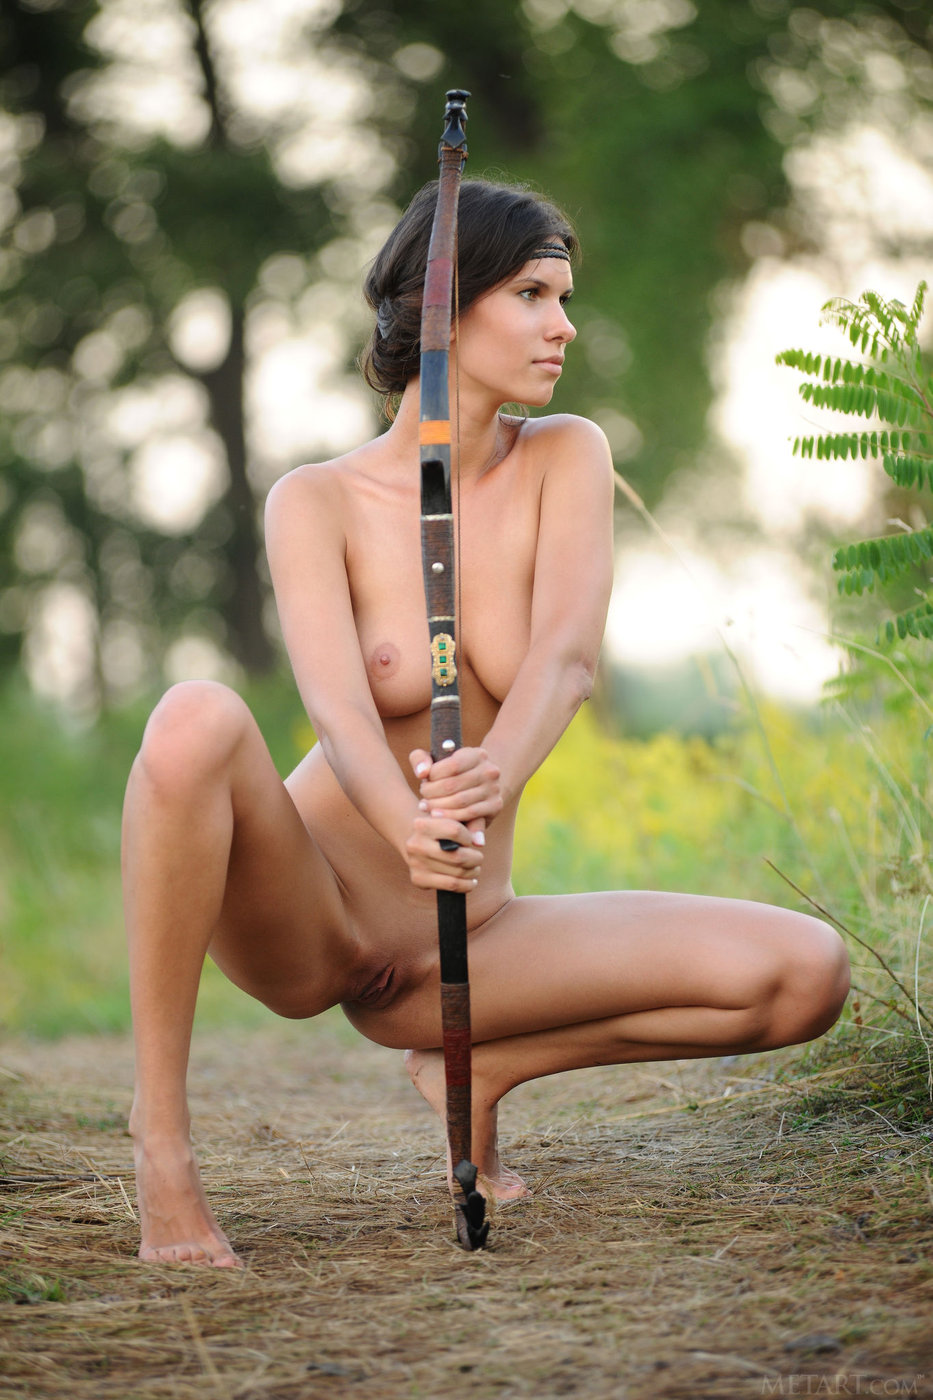 Pity, asian nude archery join